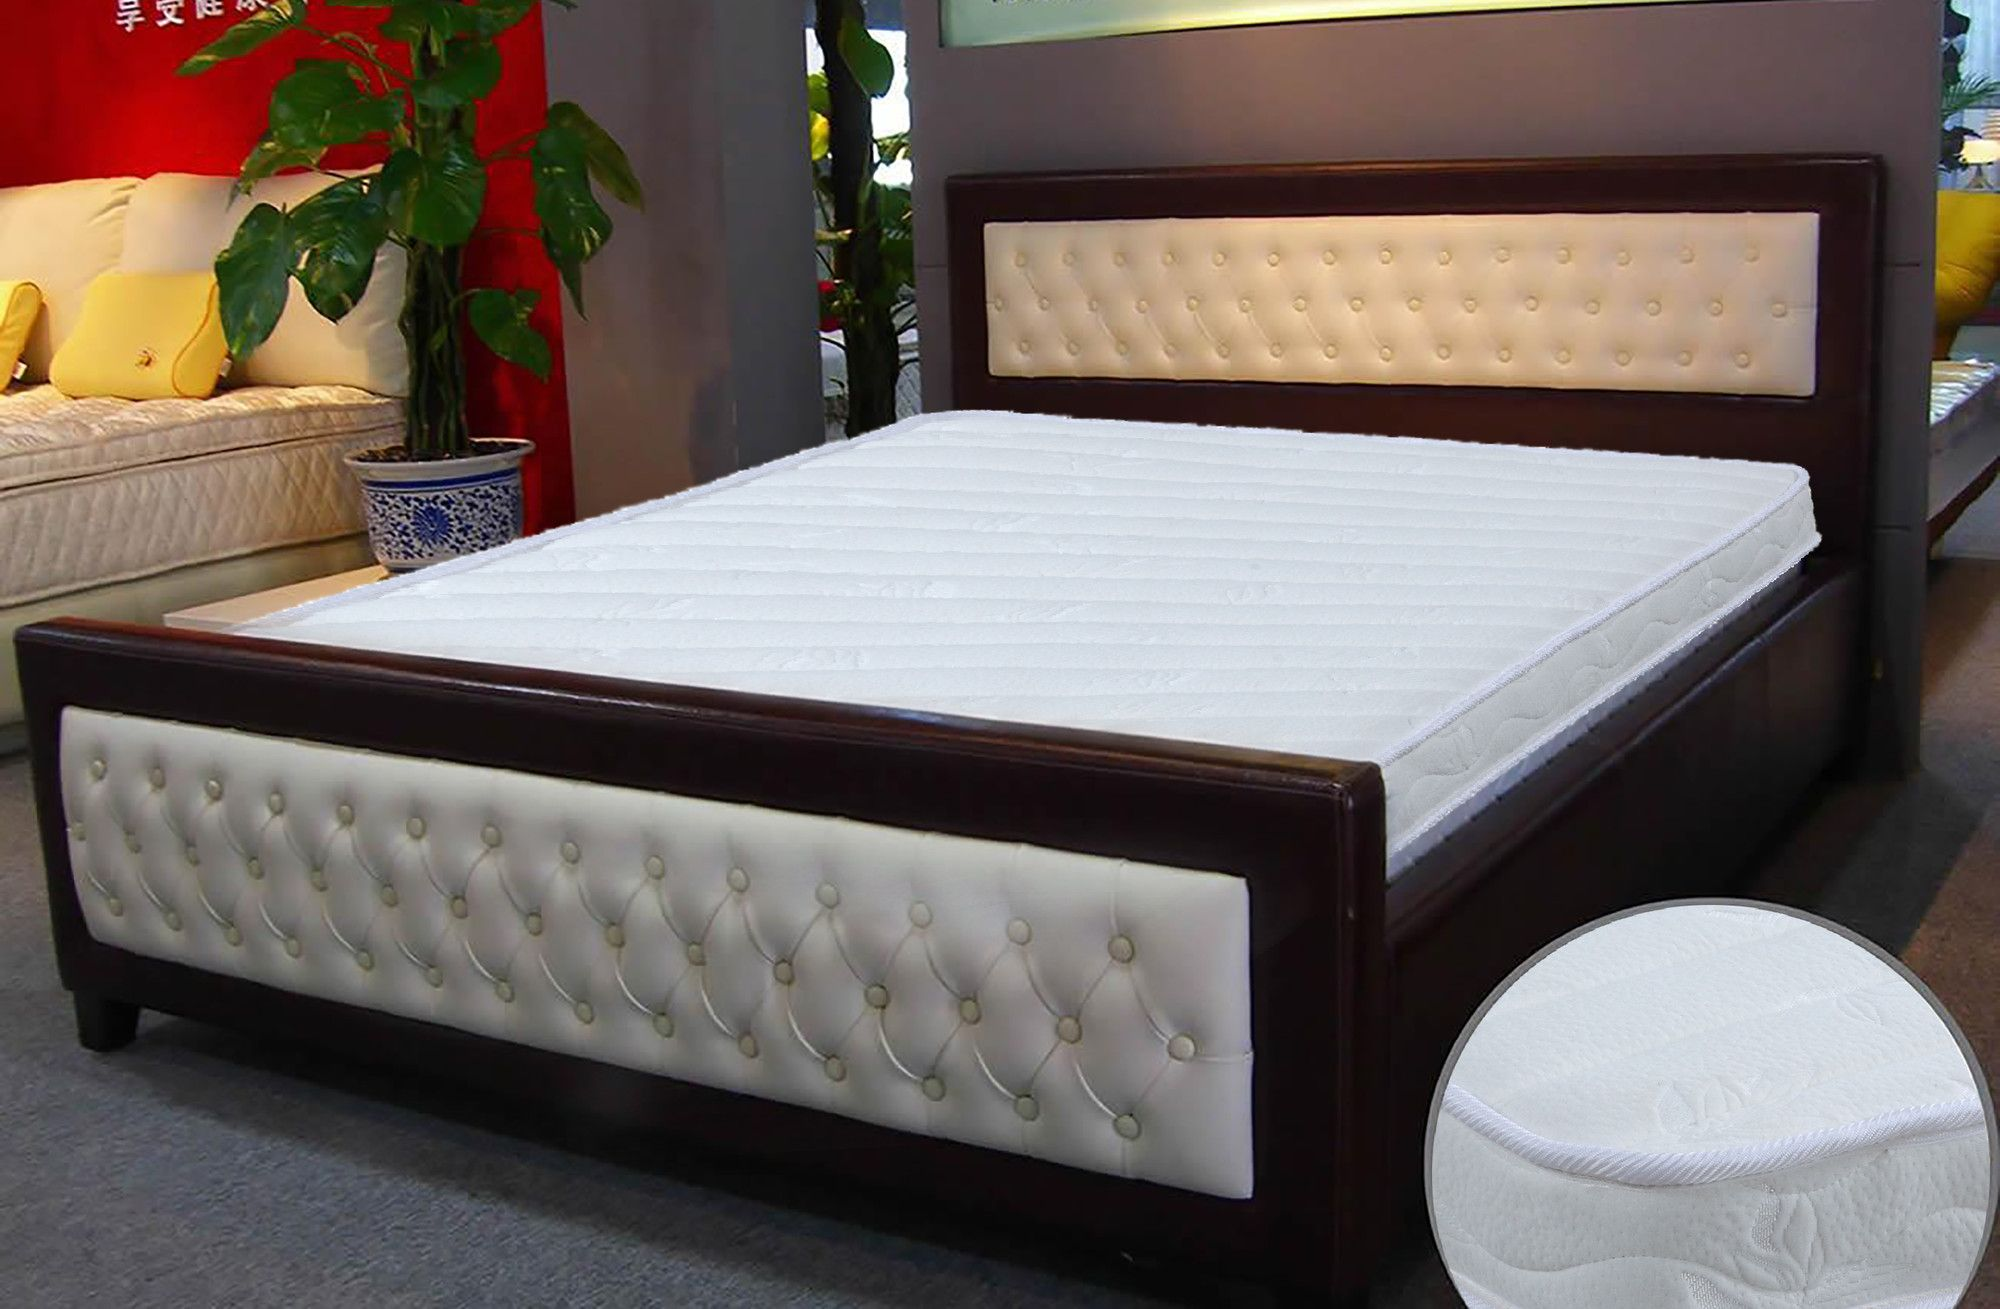 4 Medium Memory Foam Mattress Bedroom Furniture Design Bedroom